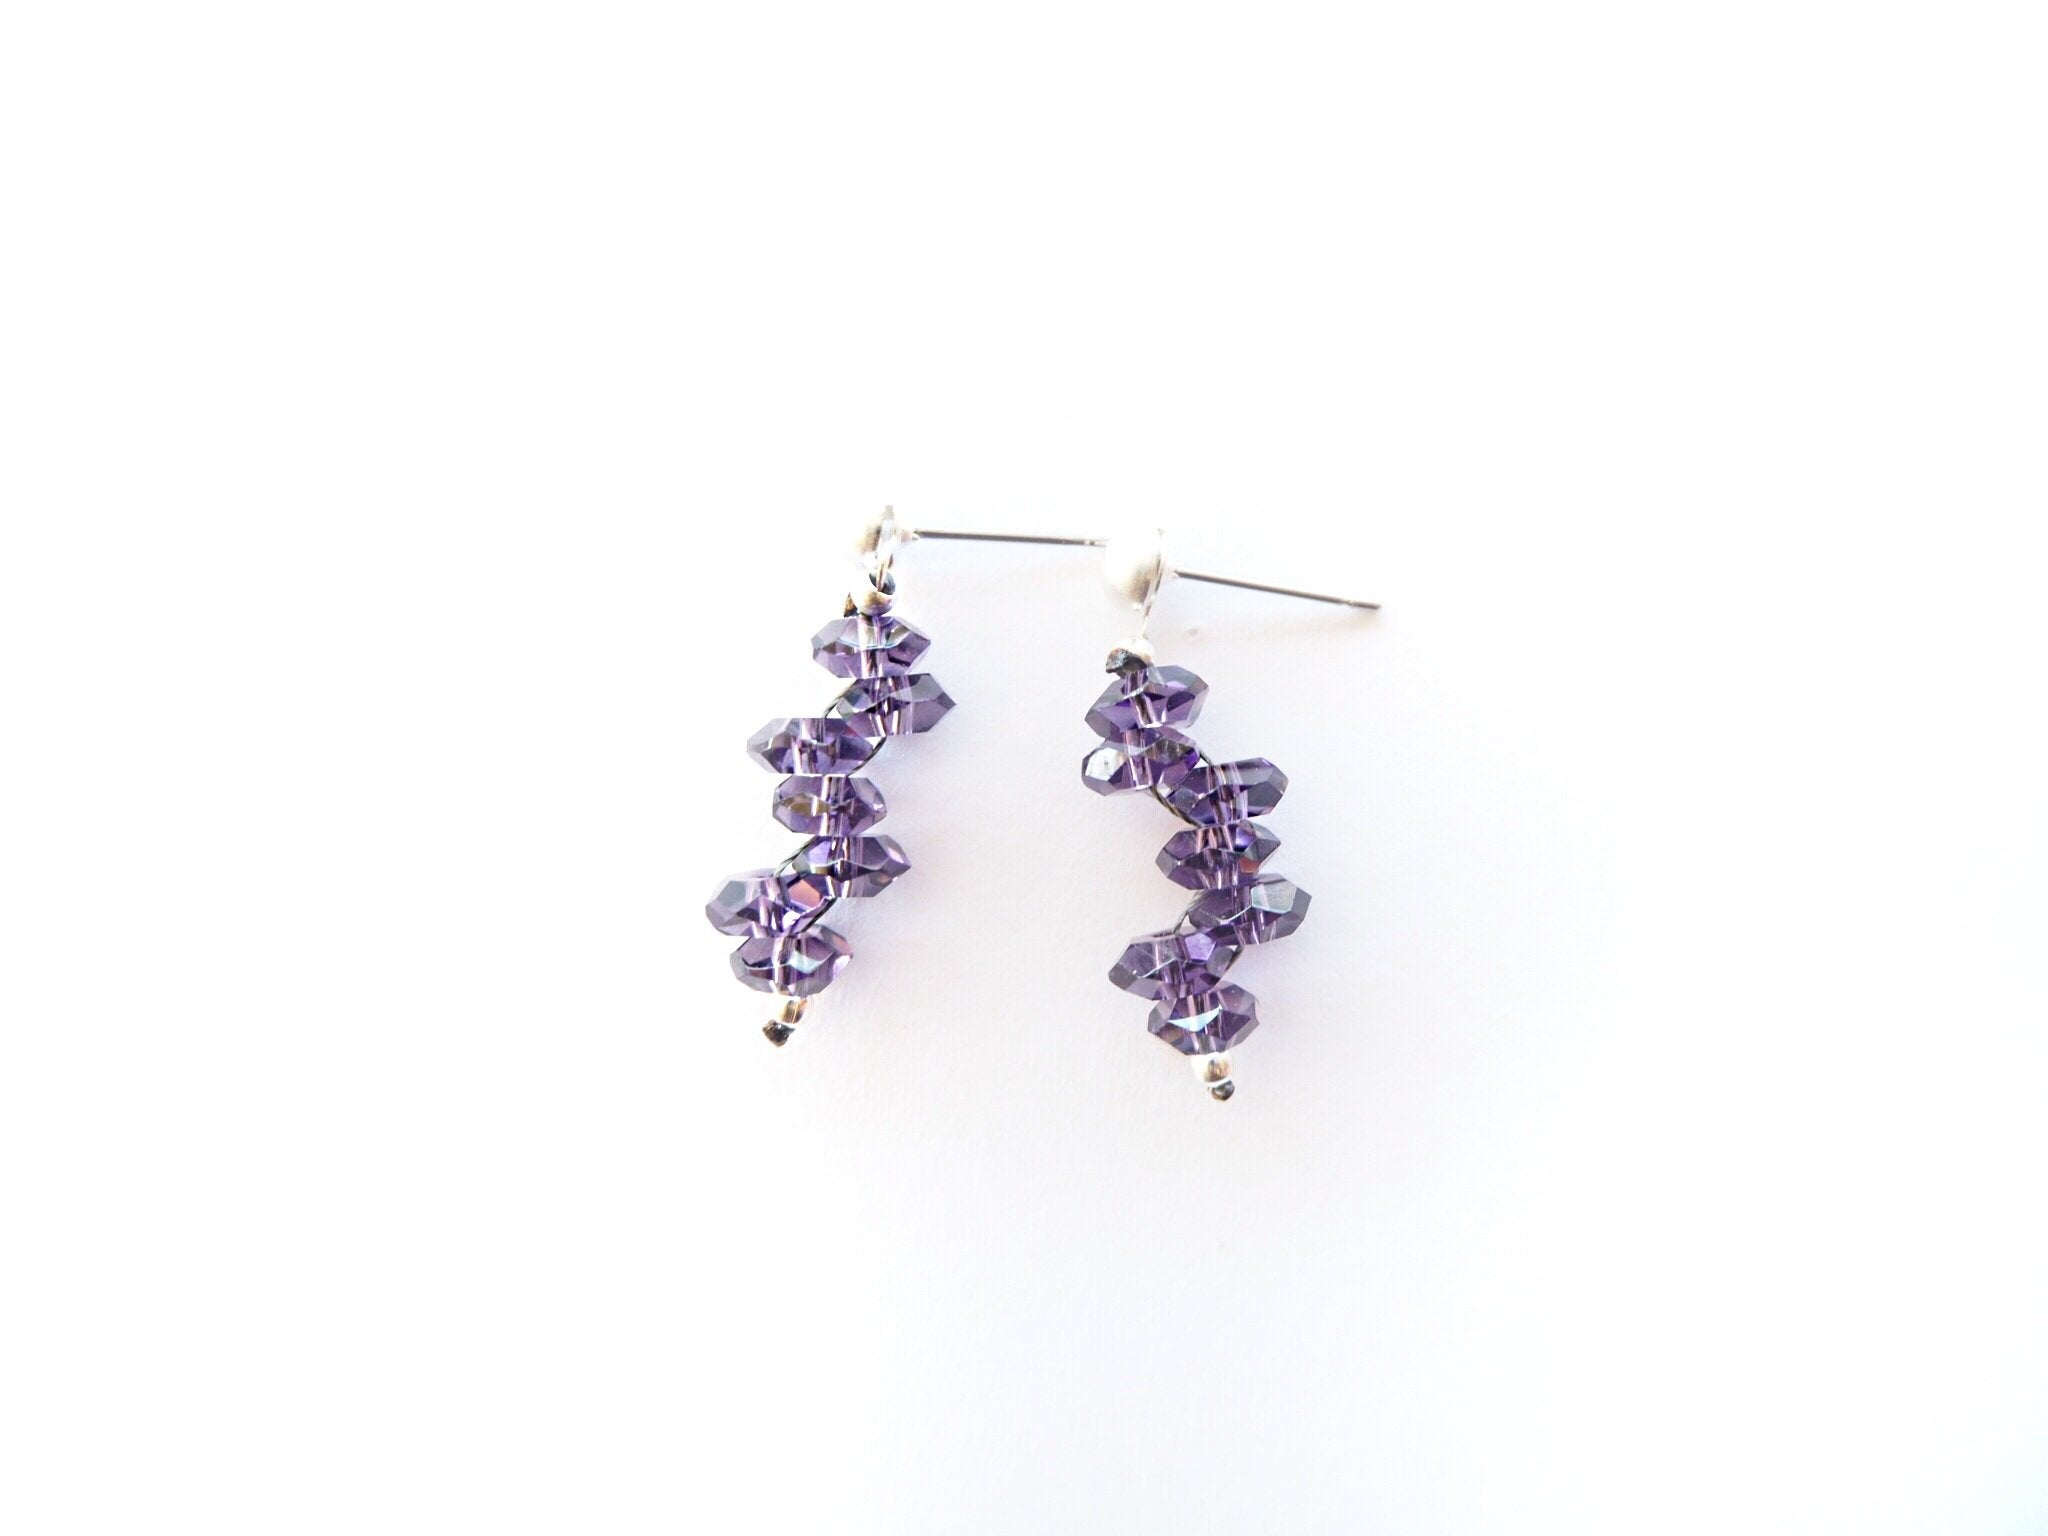 Amethyst quartz rondelle and silver earrings